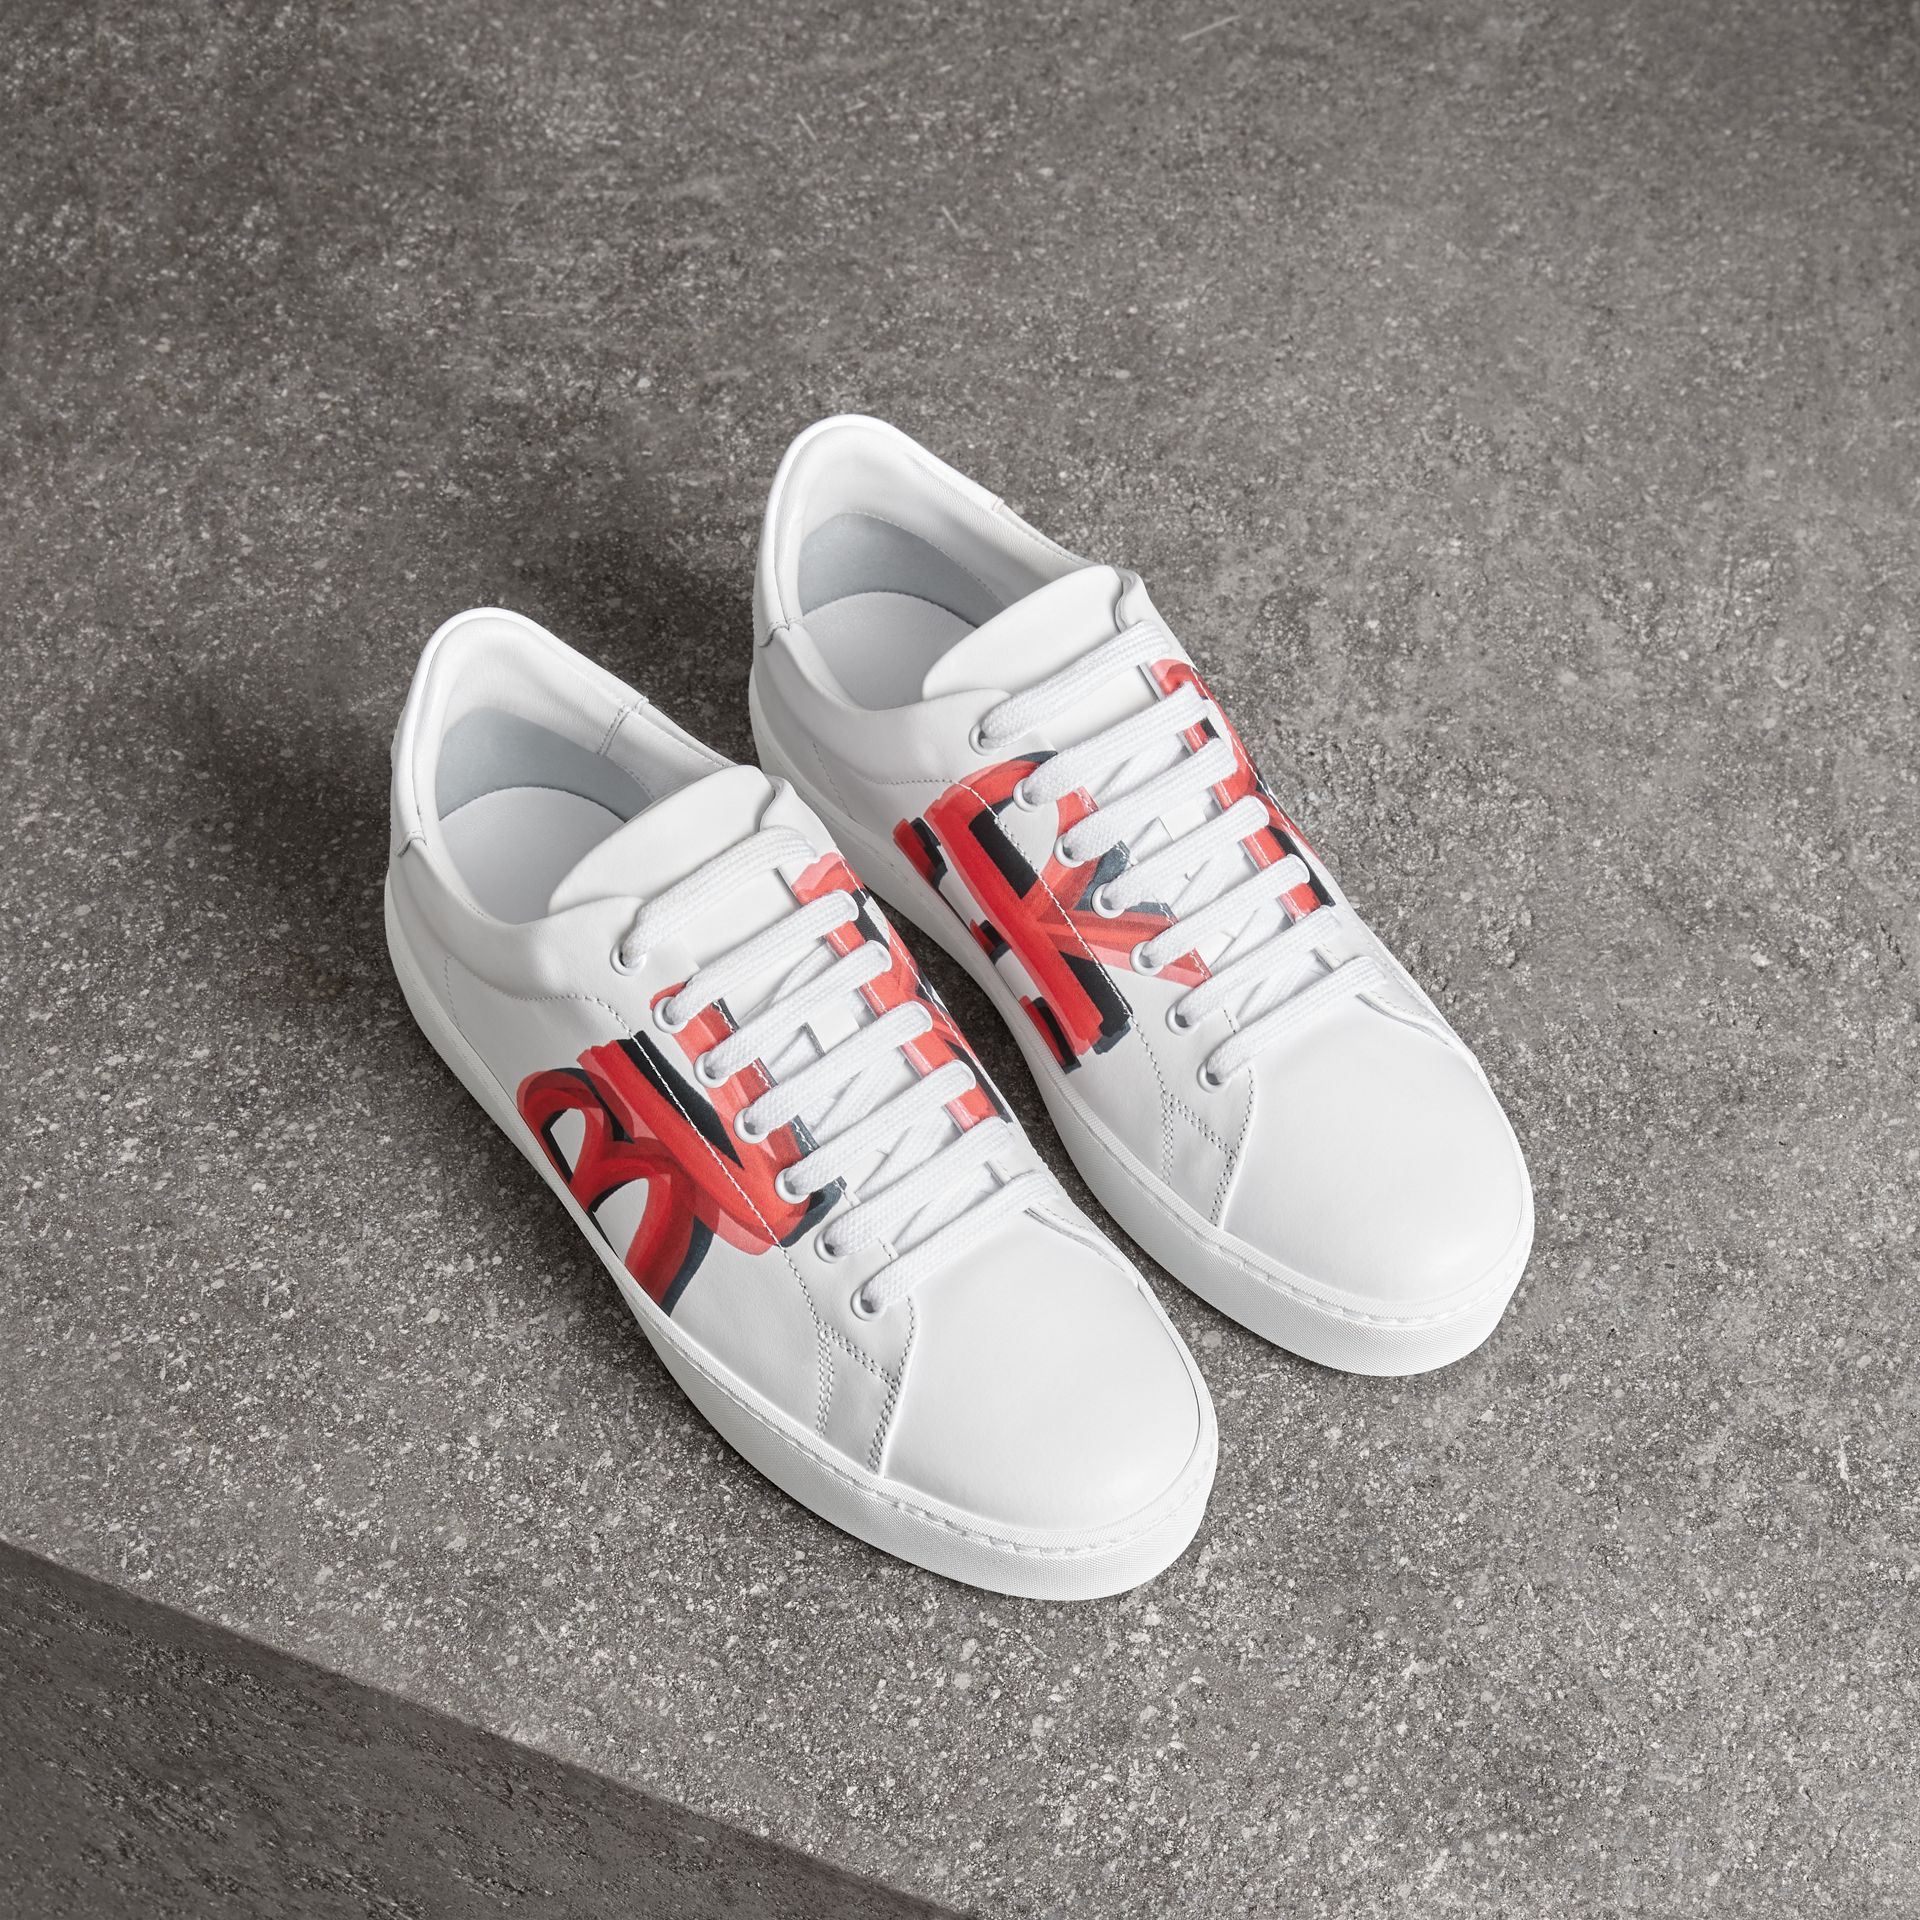 Graffiti Print Leather Sneakers in Bright Red - Women | Burberry United Kingdom - gallery image 0